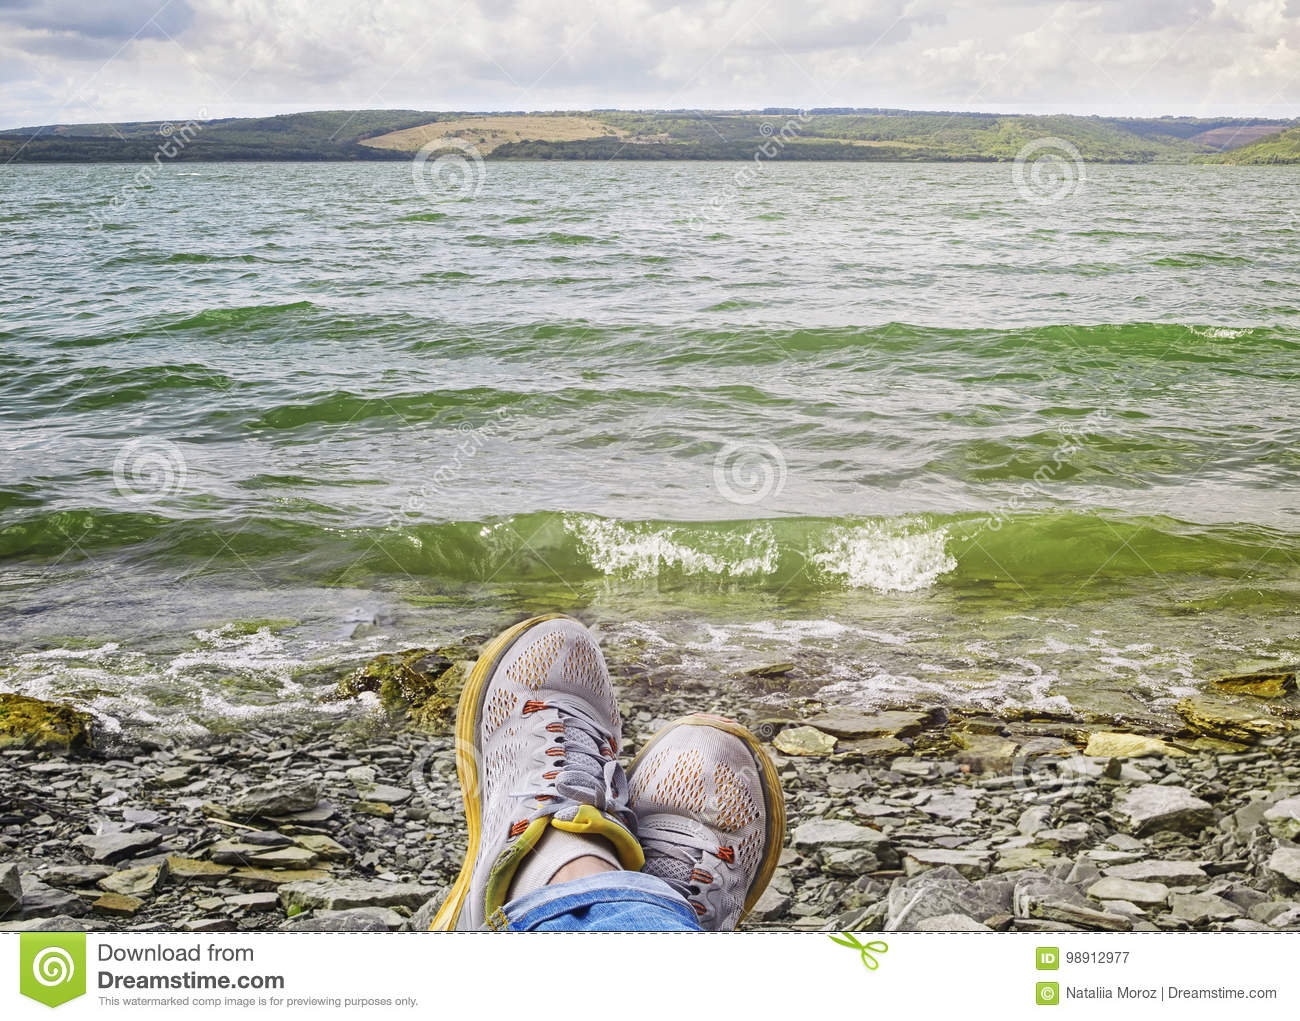 91356a90afb2 Legs Of A Woman In Sneakers Relaxing On The Rocky Beach Stock Image ...